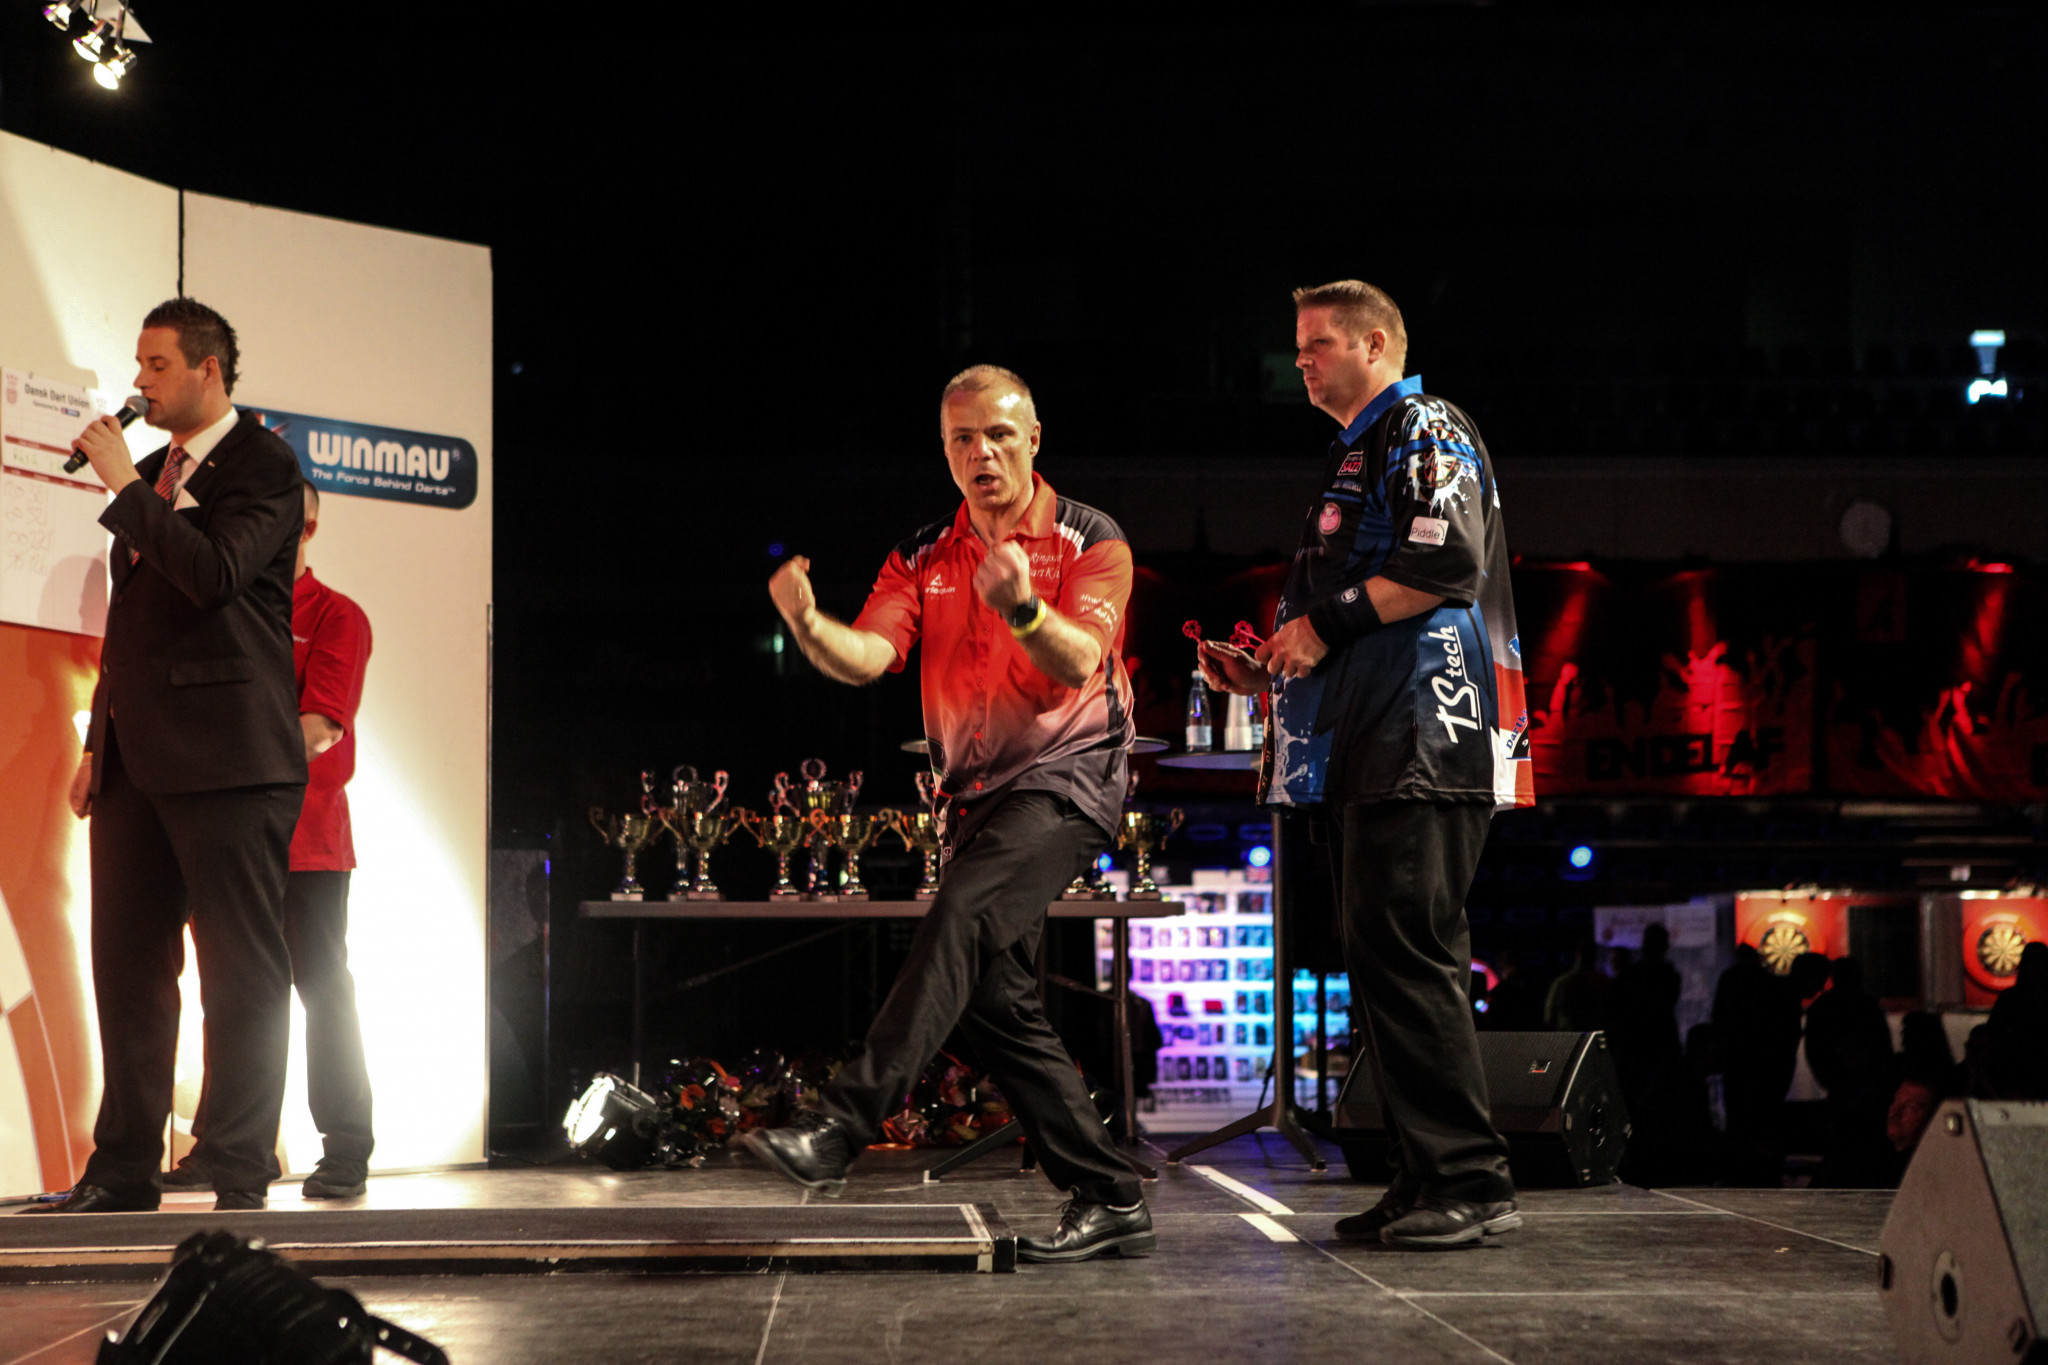 Danish city Esbjerg to host 2021 Darts World Cup